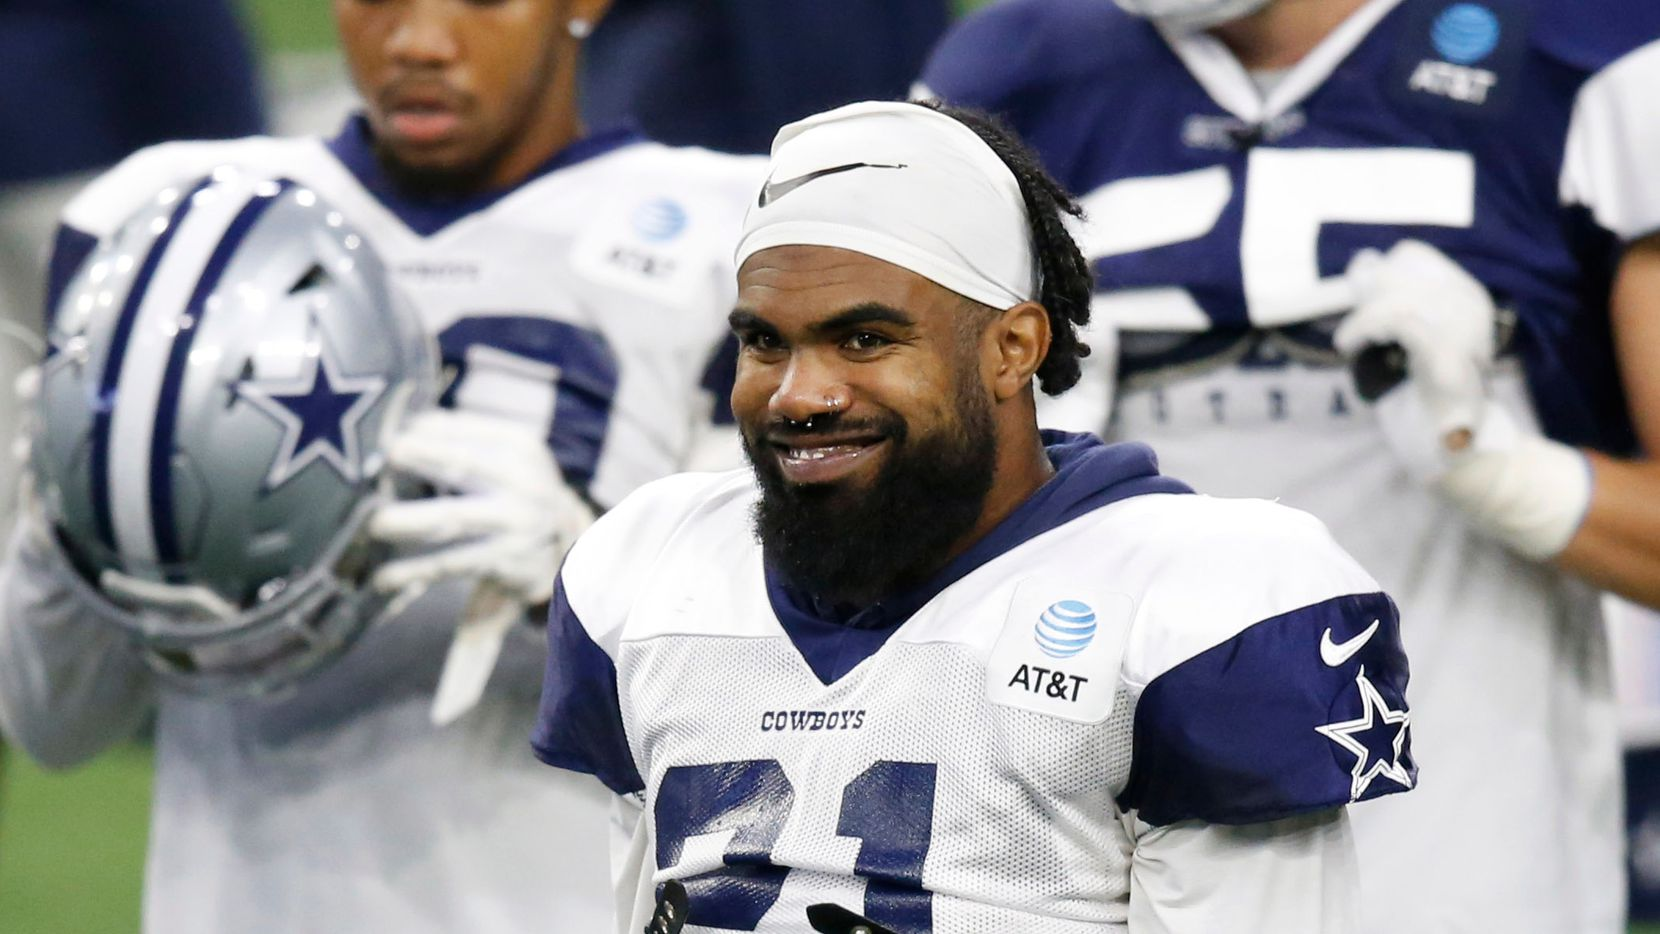 Dallas Cowboys running back Ezekiel Elliott (21) smiles during training camp at the Dallas Cowboys headquarters at The Star in Frisco, Texas on Monday, August 17, 2020.